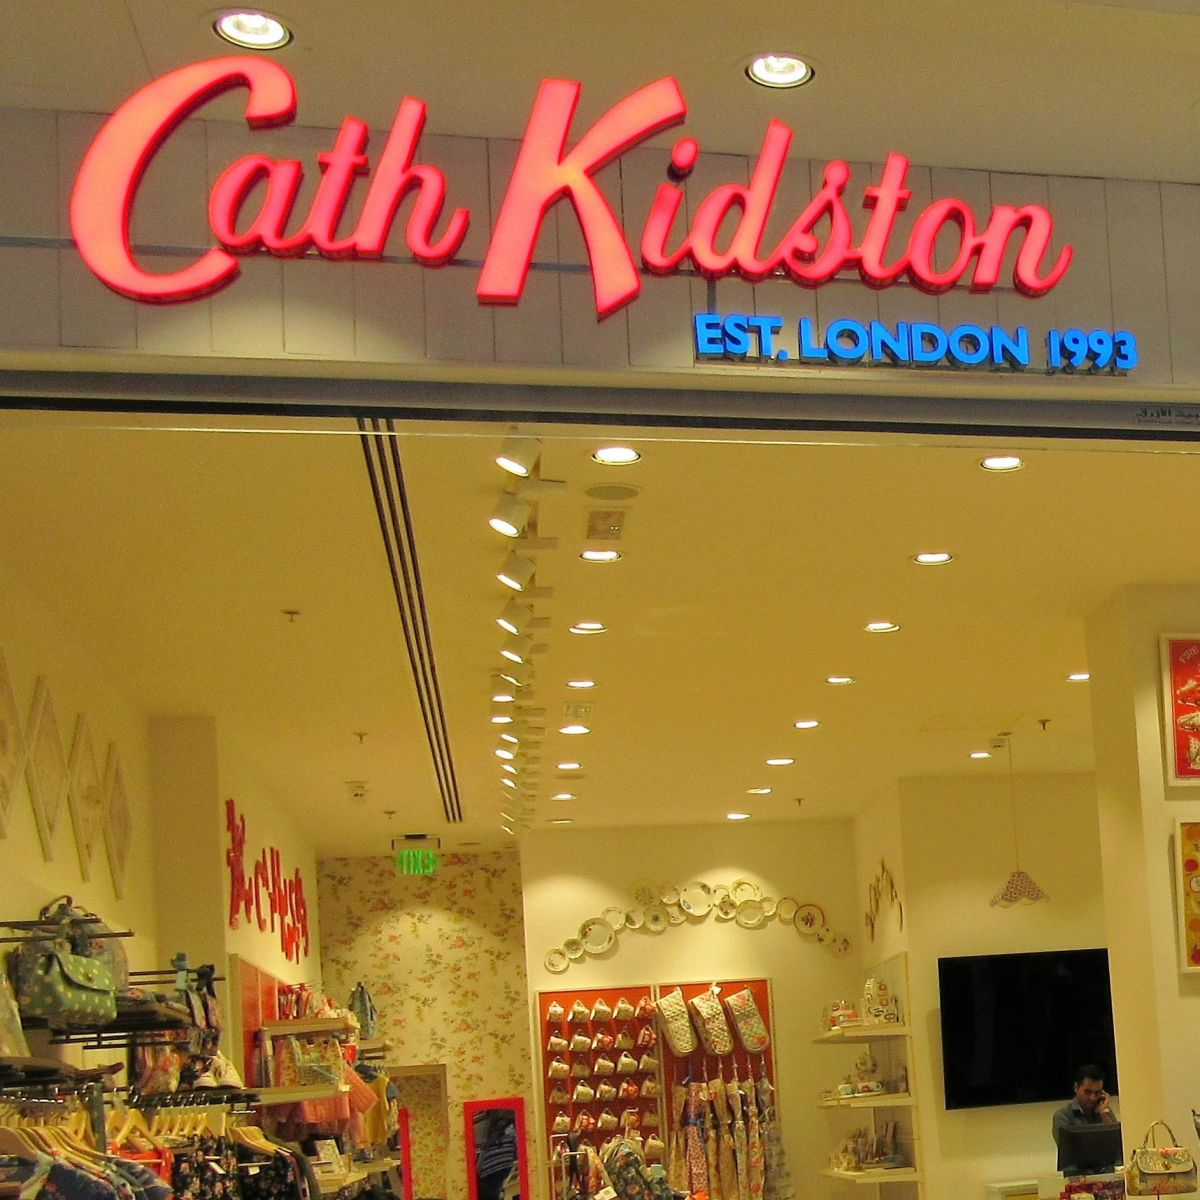 CATHKIDSTON - LANDMARK MALL